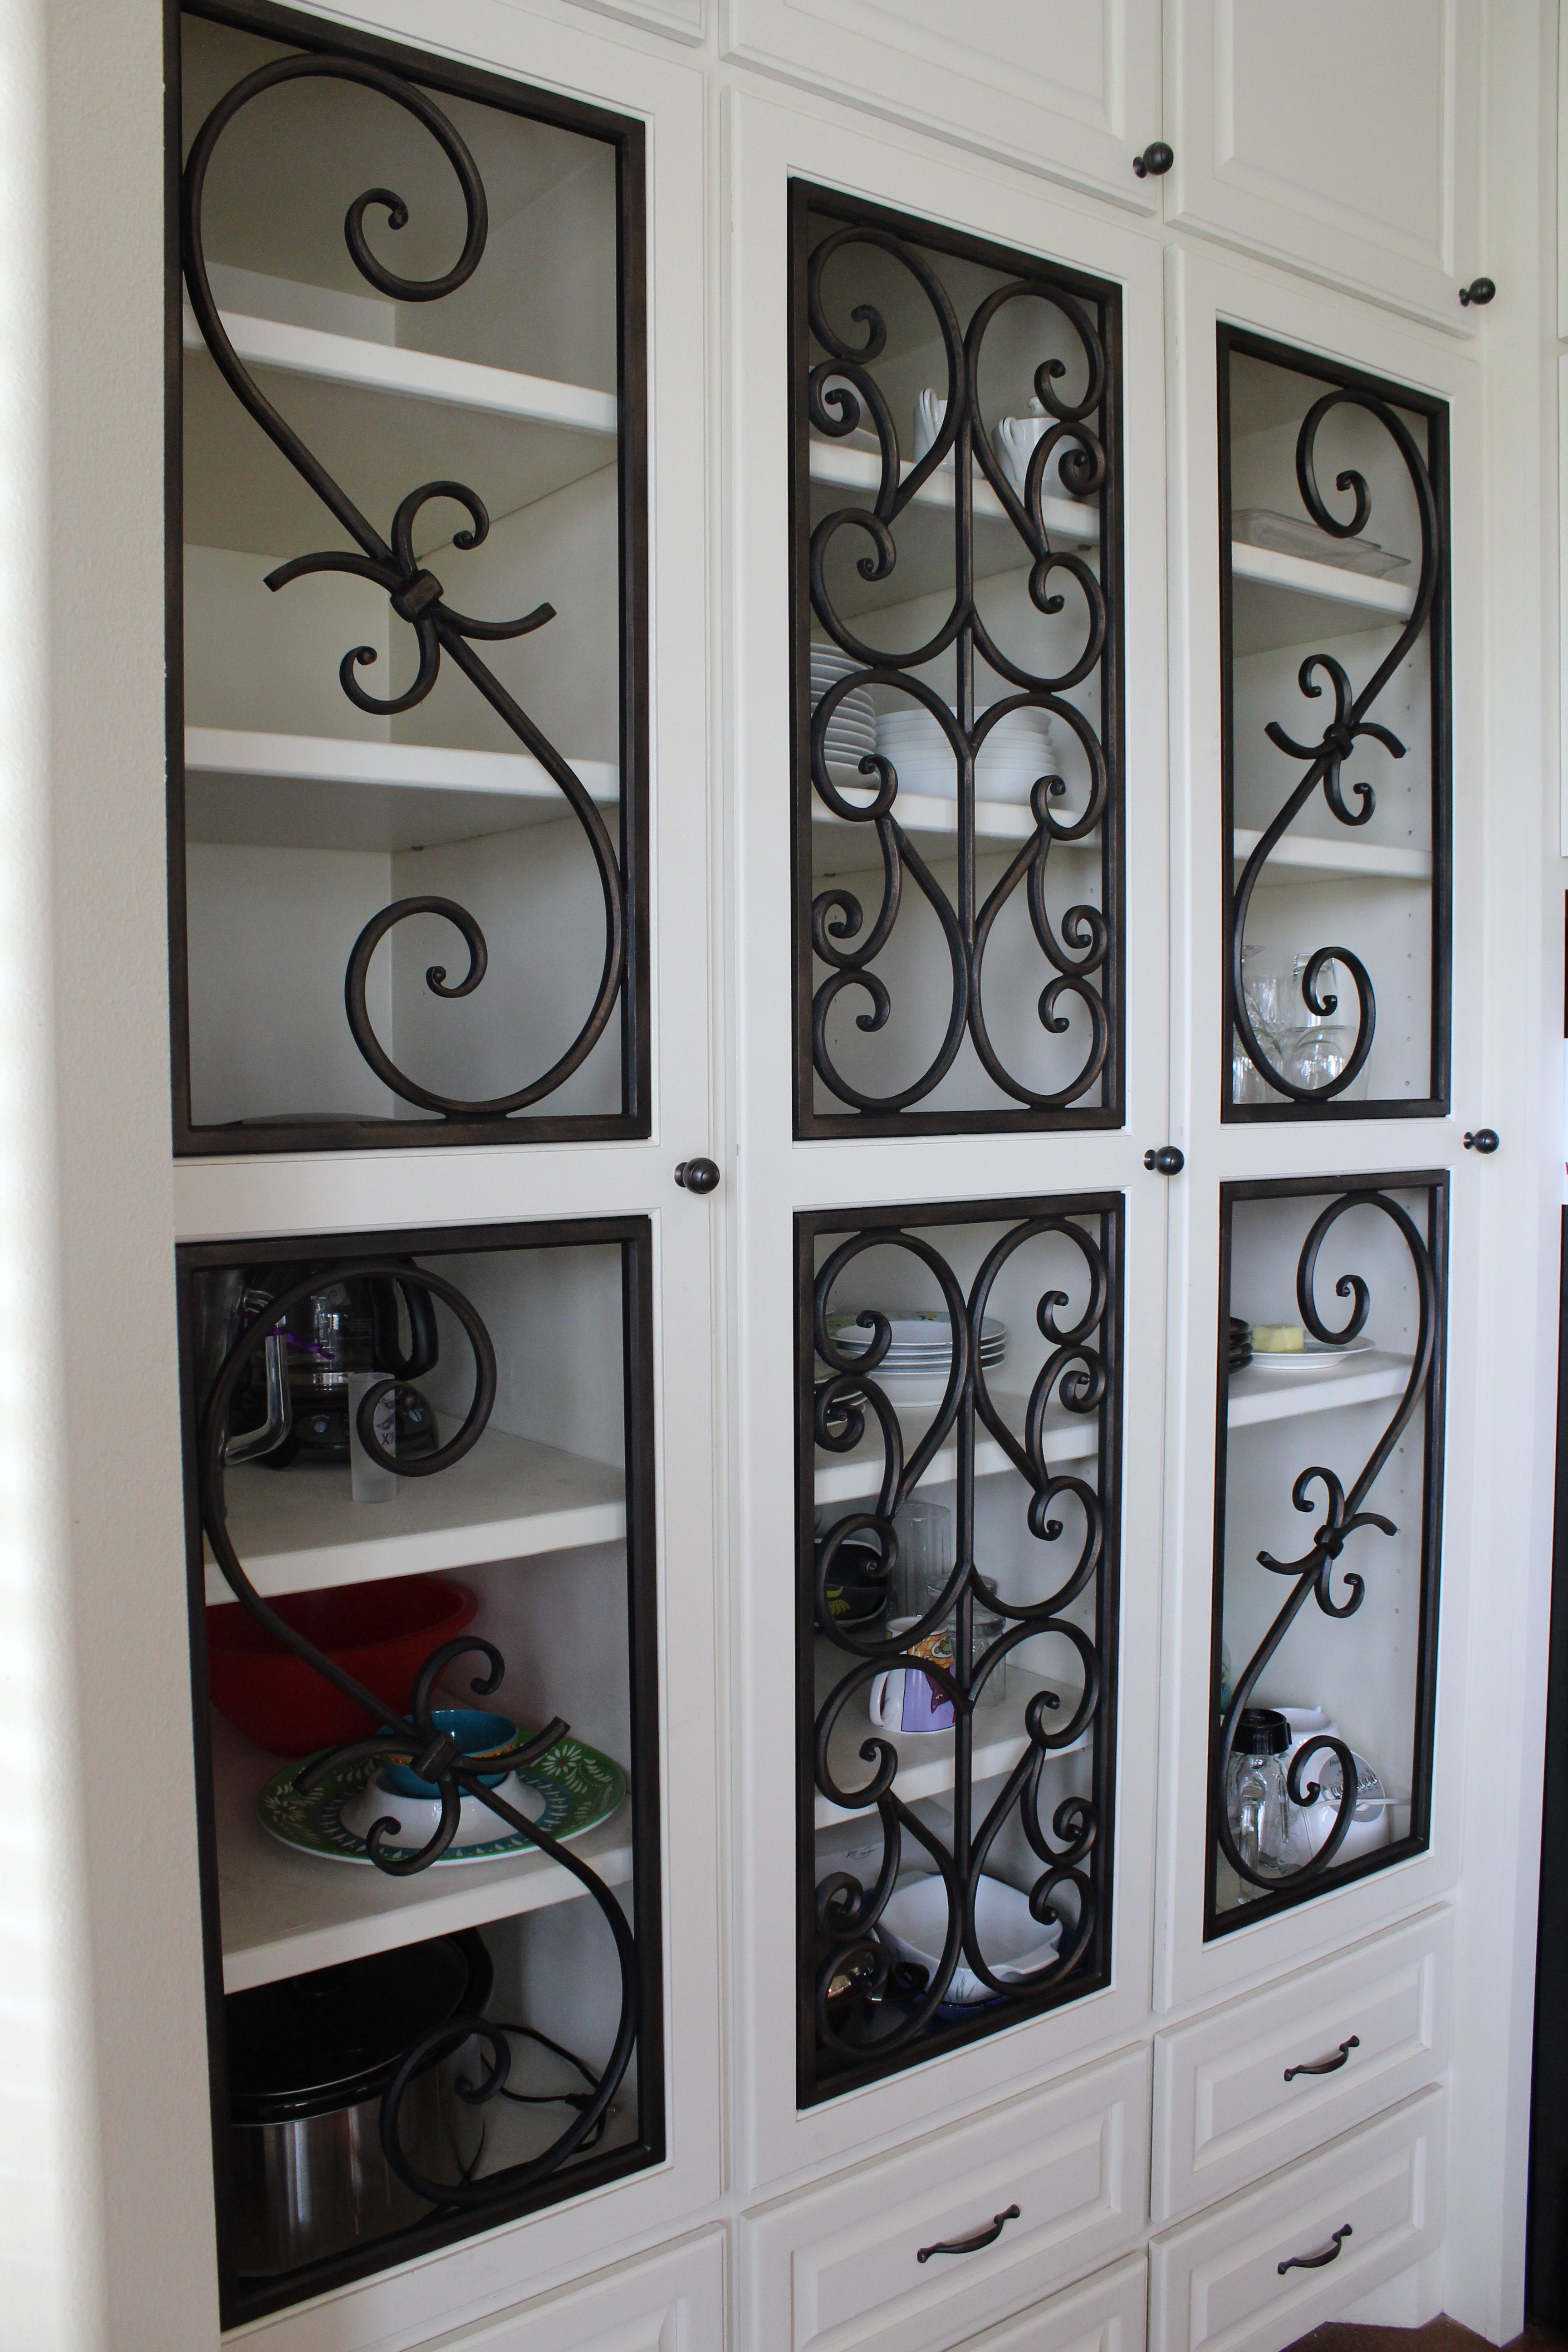 Decorative Faux Wrought Iron Cabinet Insert Covering